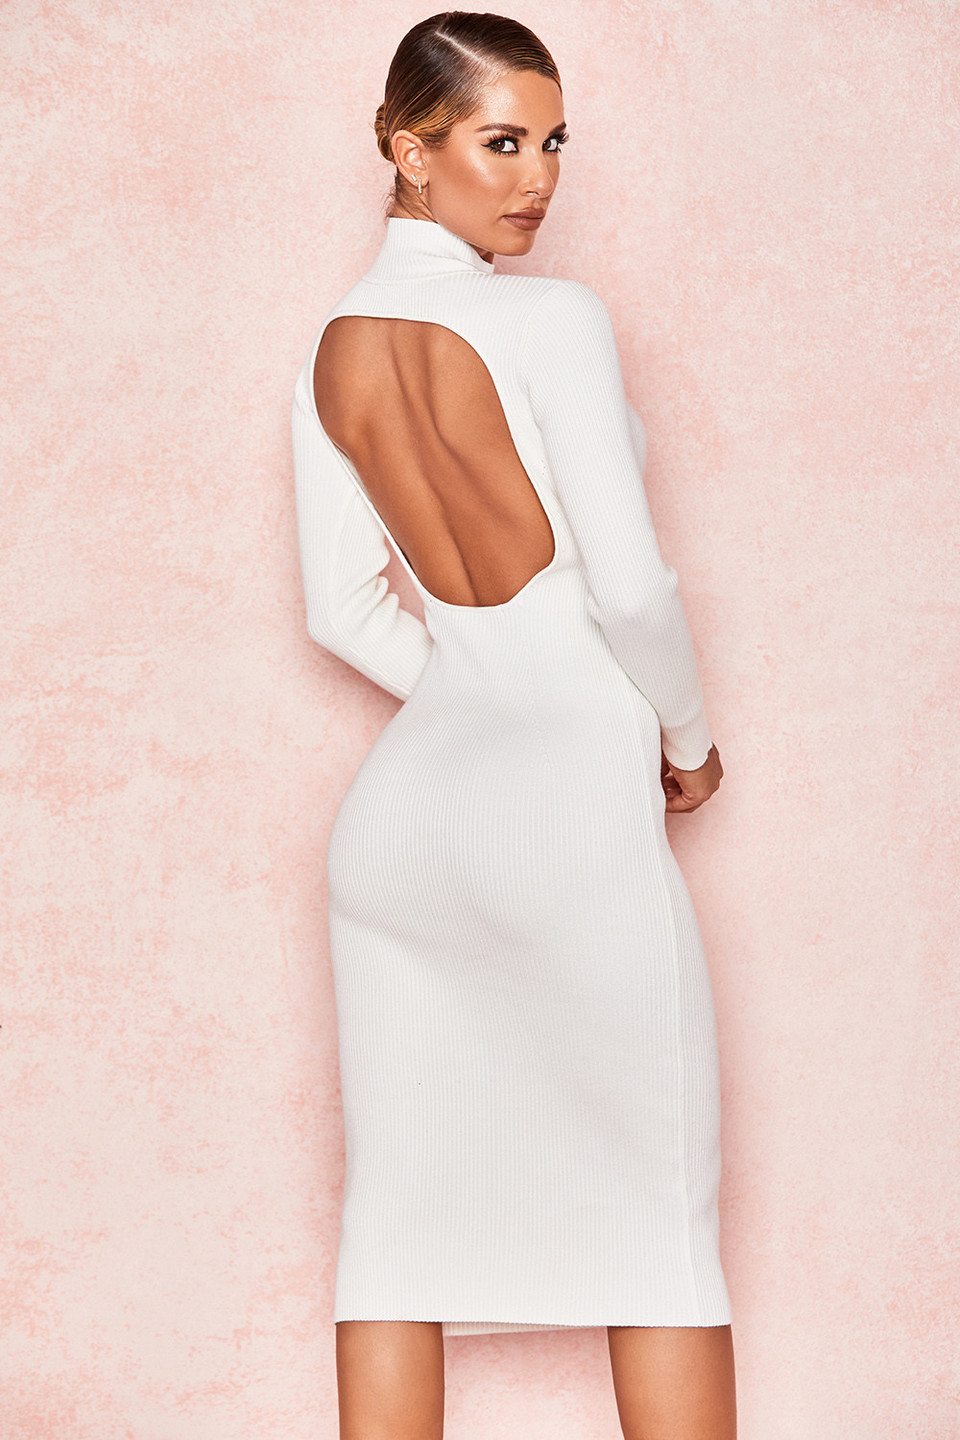 Raphaelle White Rib Knit Backless Midi Dress